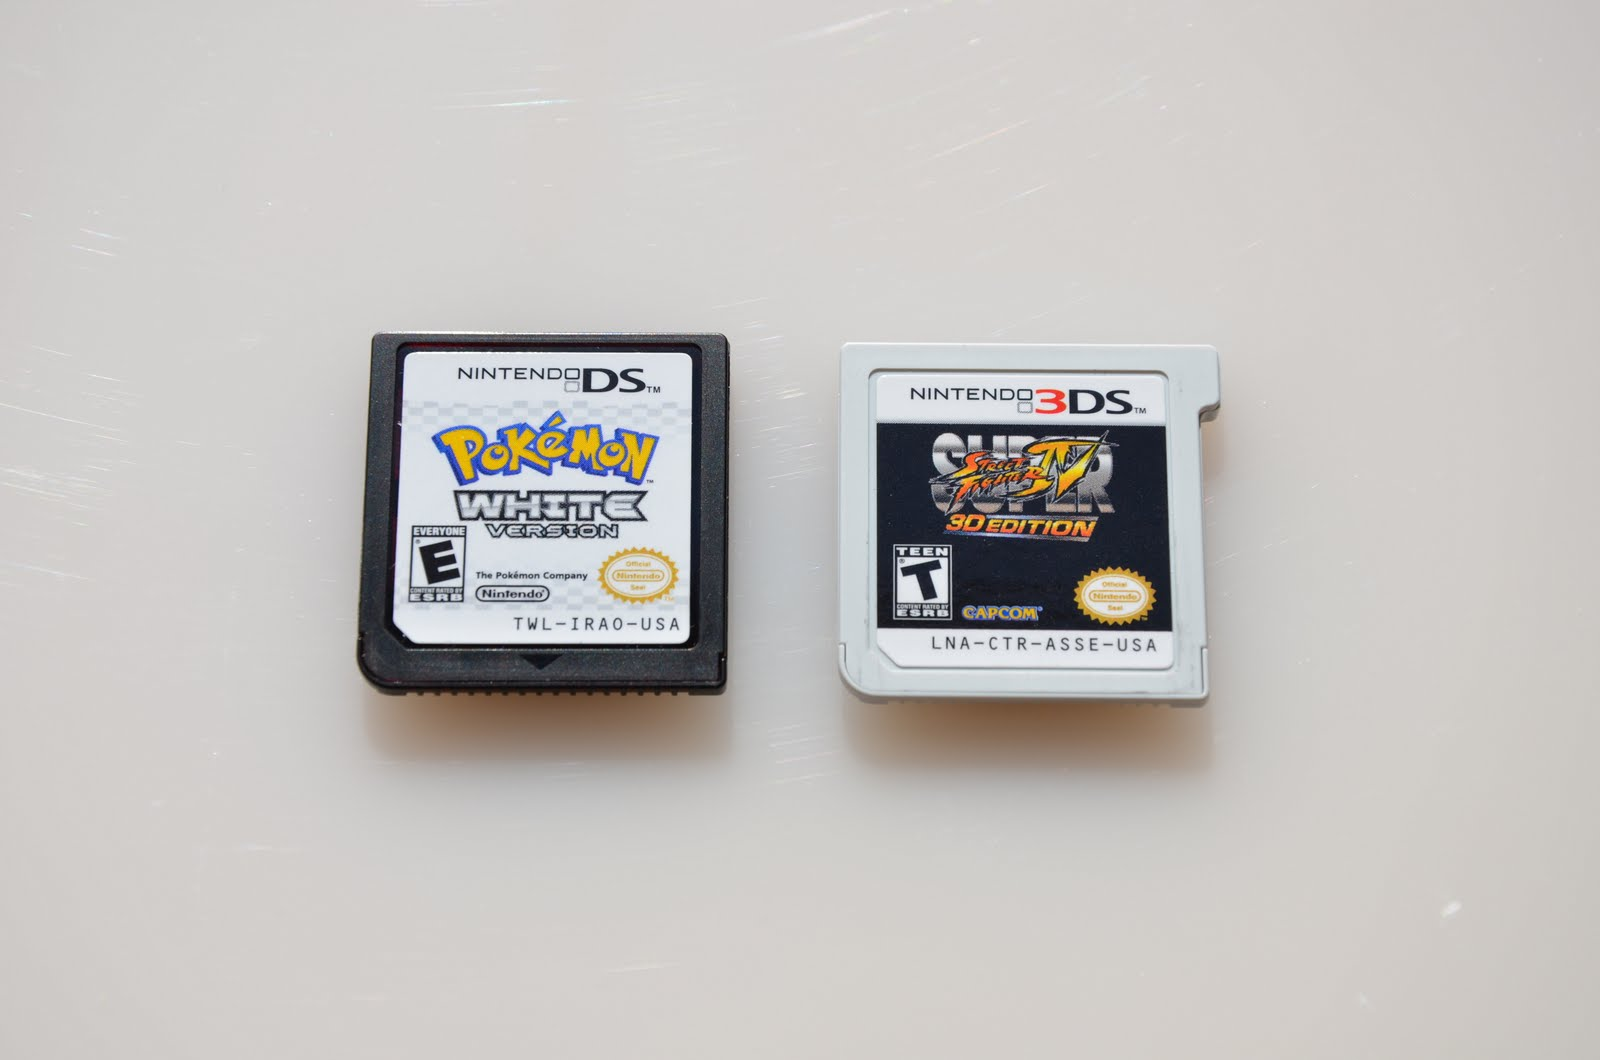 Nintendo 3DS Game Cartridge